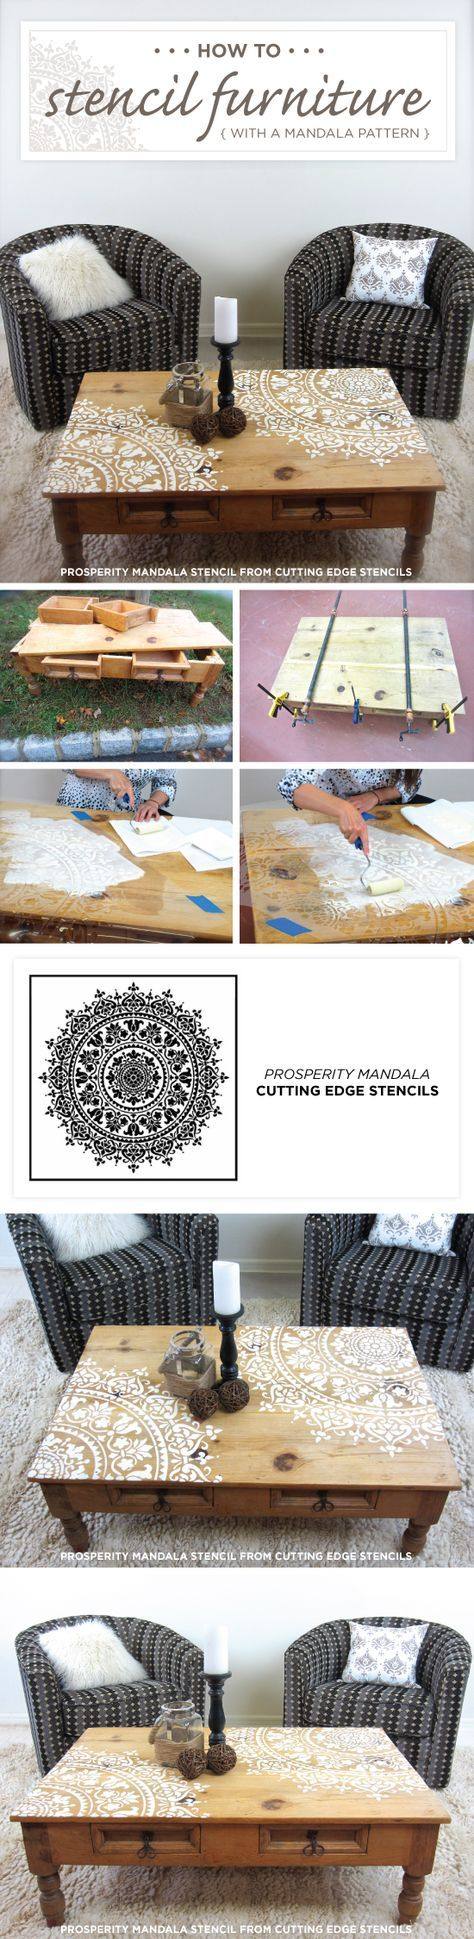 How To Stencil Furniture With A Mandala Pattern Bois